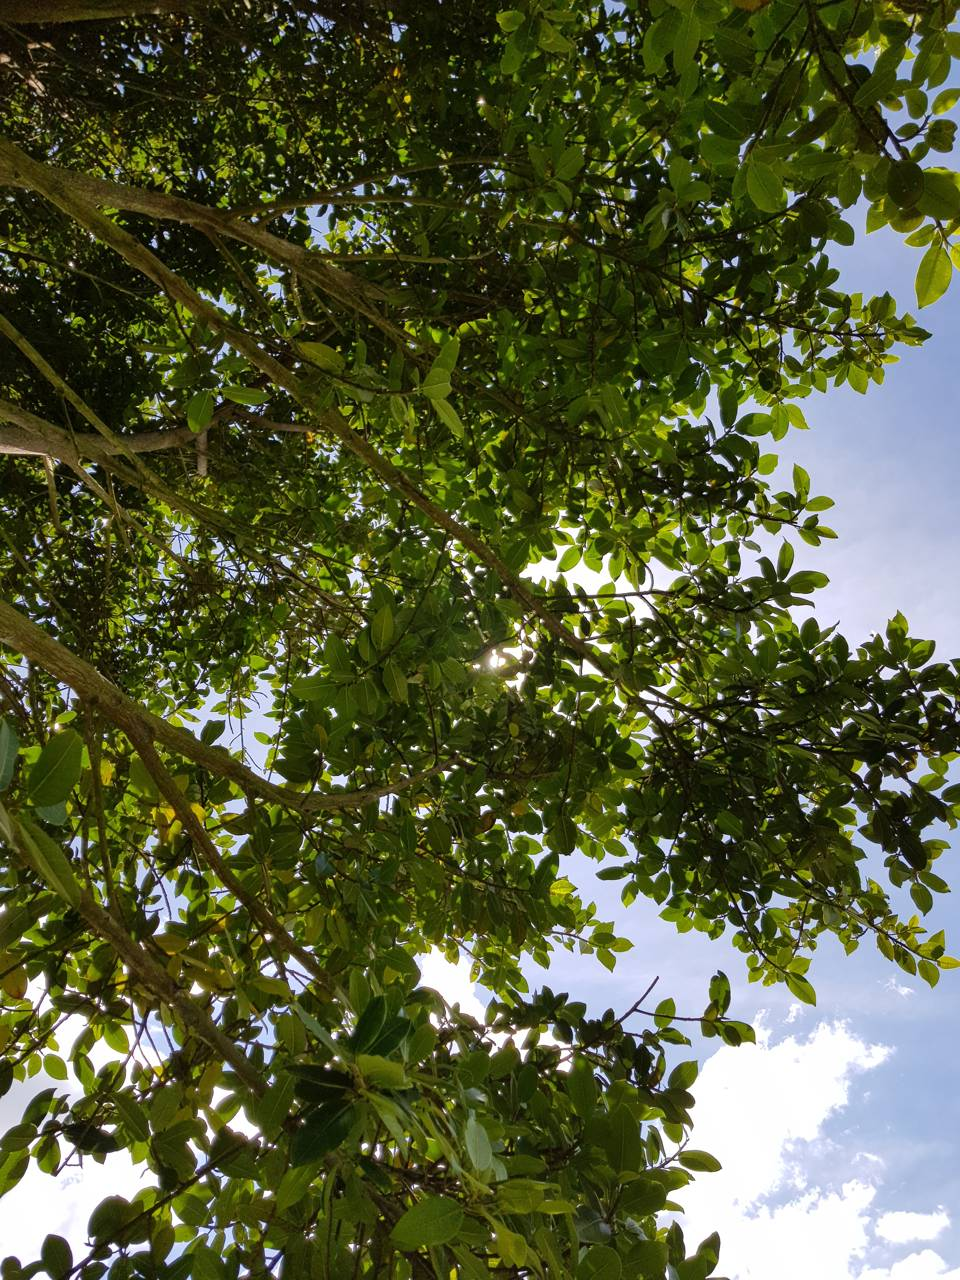 Leaves at the sky